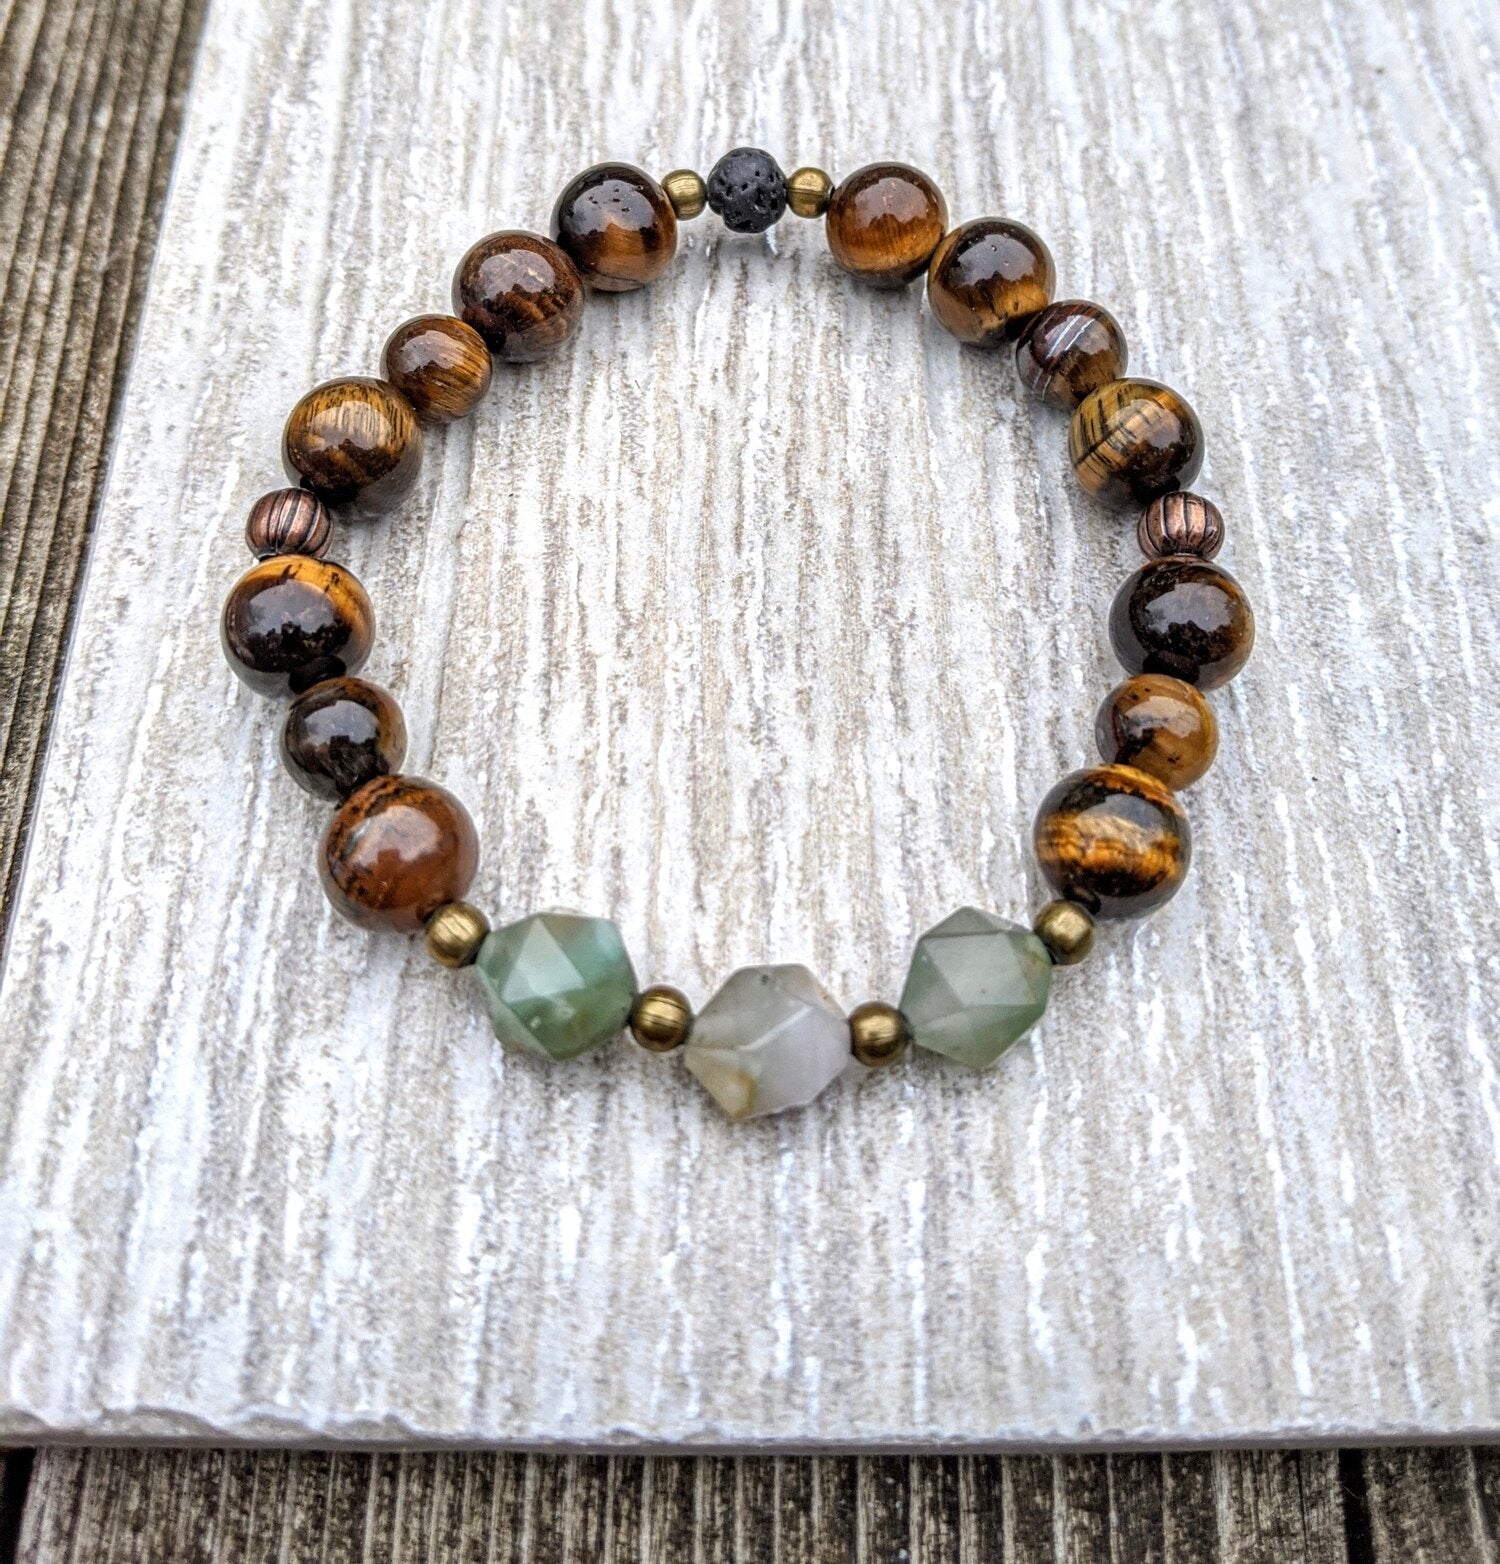 RUDEBECKIA - Tiger Eye + Chrysoprase Crystal Gemstone Bracelet - Femme Wares Niagara Local Small Business